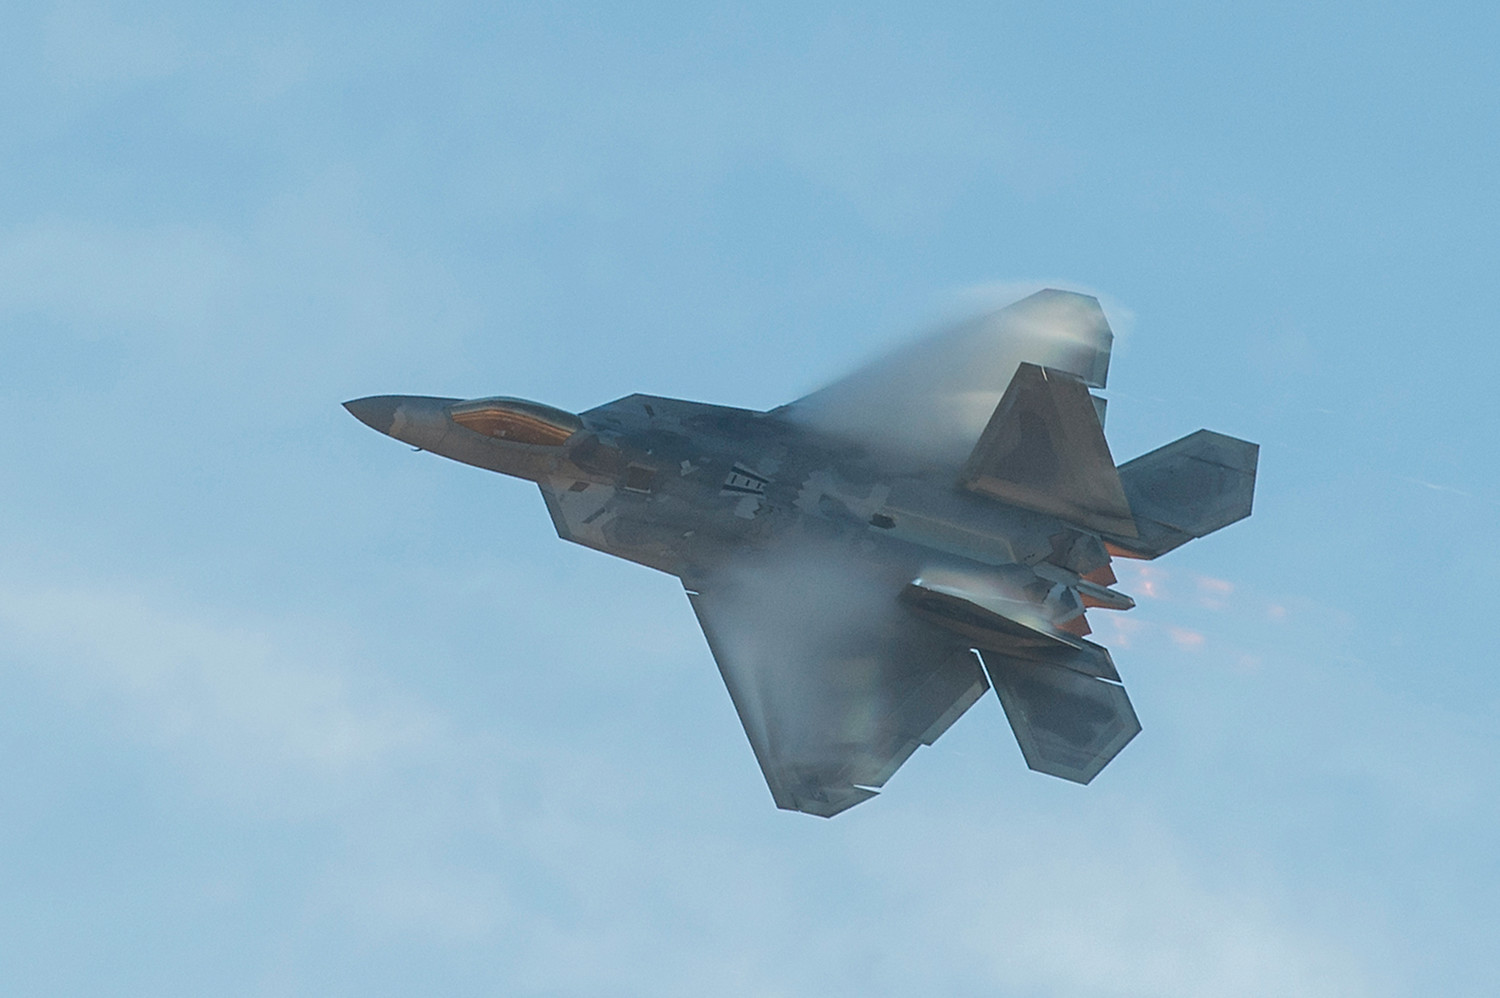 An Air Force F-22 Raptor stealth fighter is shown during an aerial combat capability demonstration at Shaw Air Force Base on Nov. 30, 2017. Defense contractor employees of Lockheed Martin, who produces the Raptor, are among the hacking targets of Russian cyberspies.